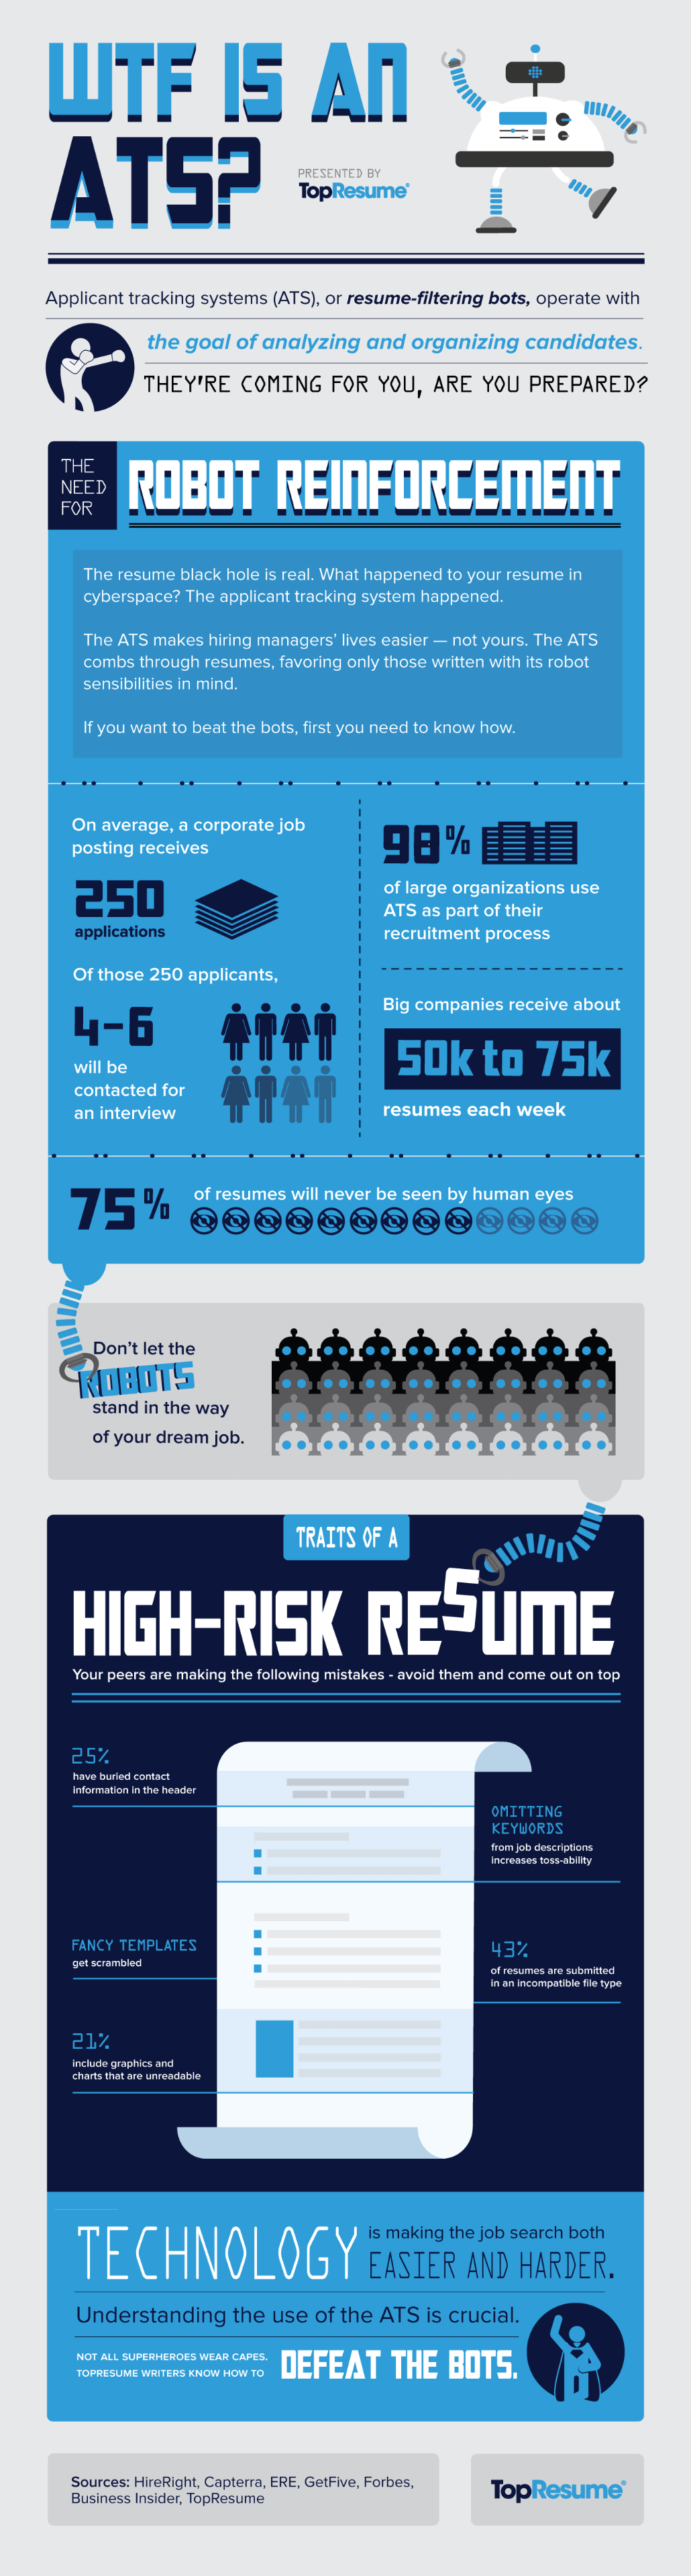 Infographic on How to Write an ATS-Friendly Resume